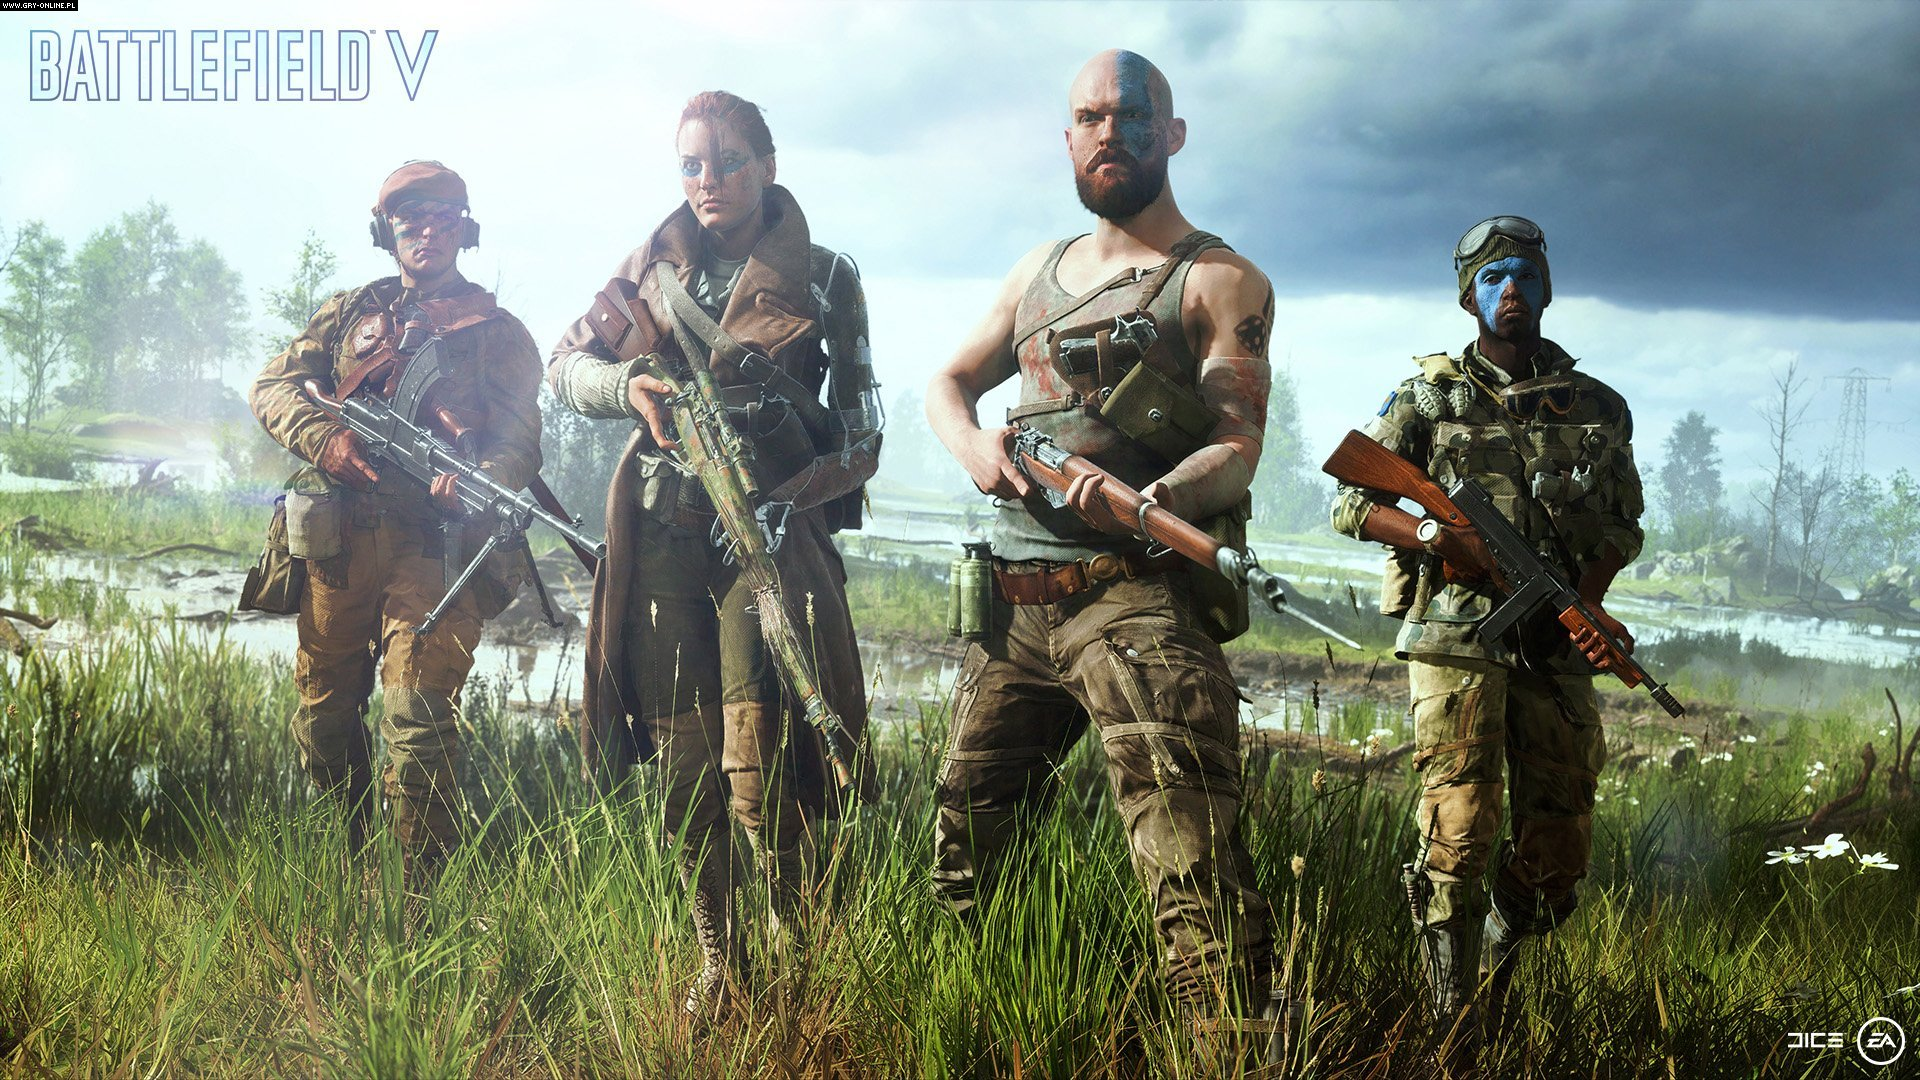 Battlefield V PC, PS4, XONE Games Image 30/38, EA DICE / Digital Illusions CE, Electronic Arts Inc.